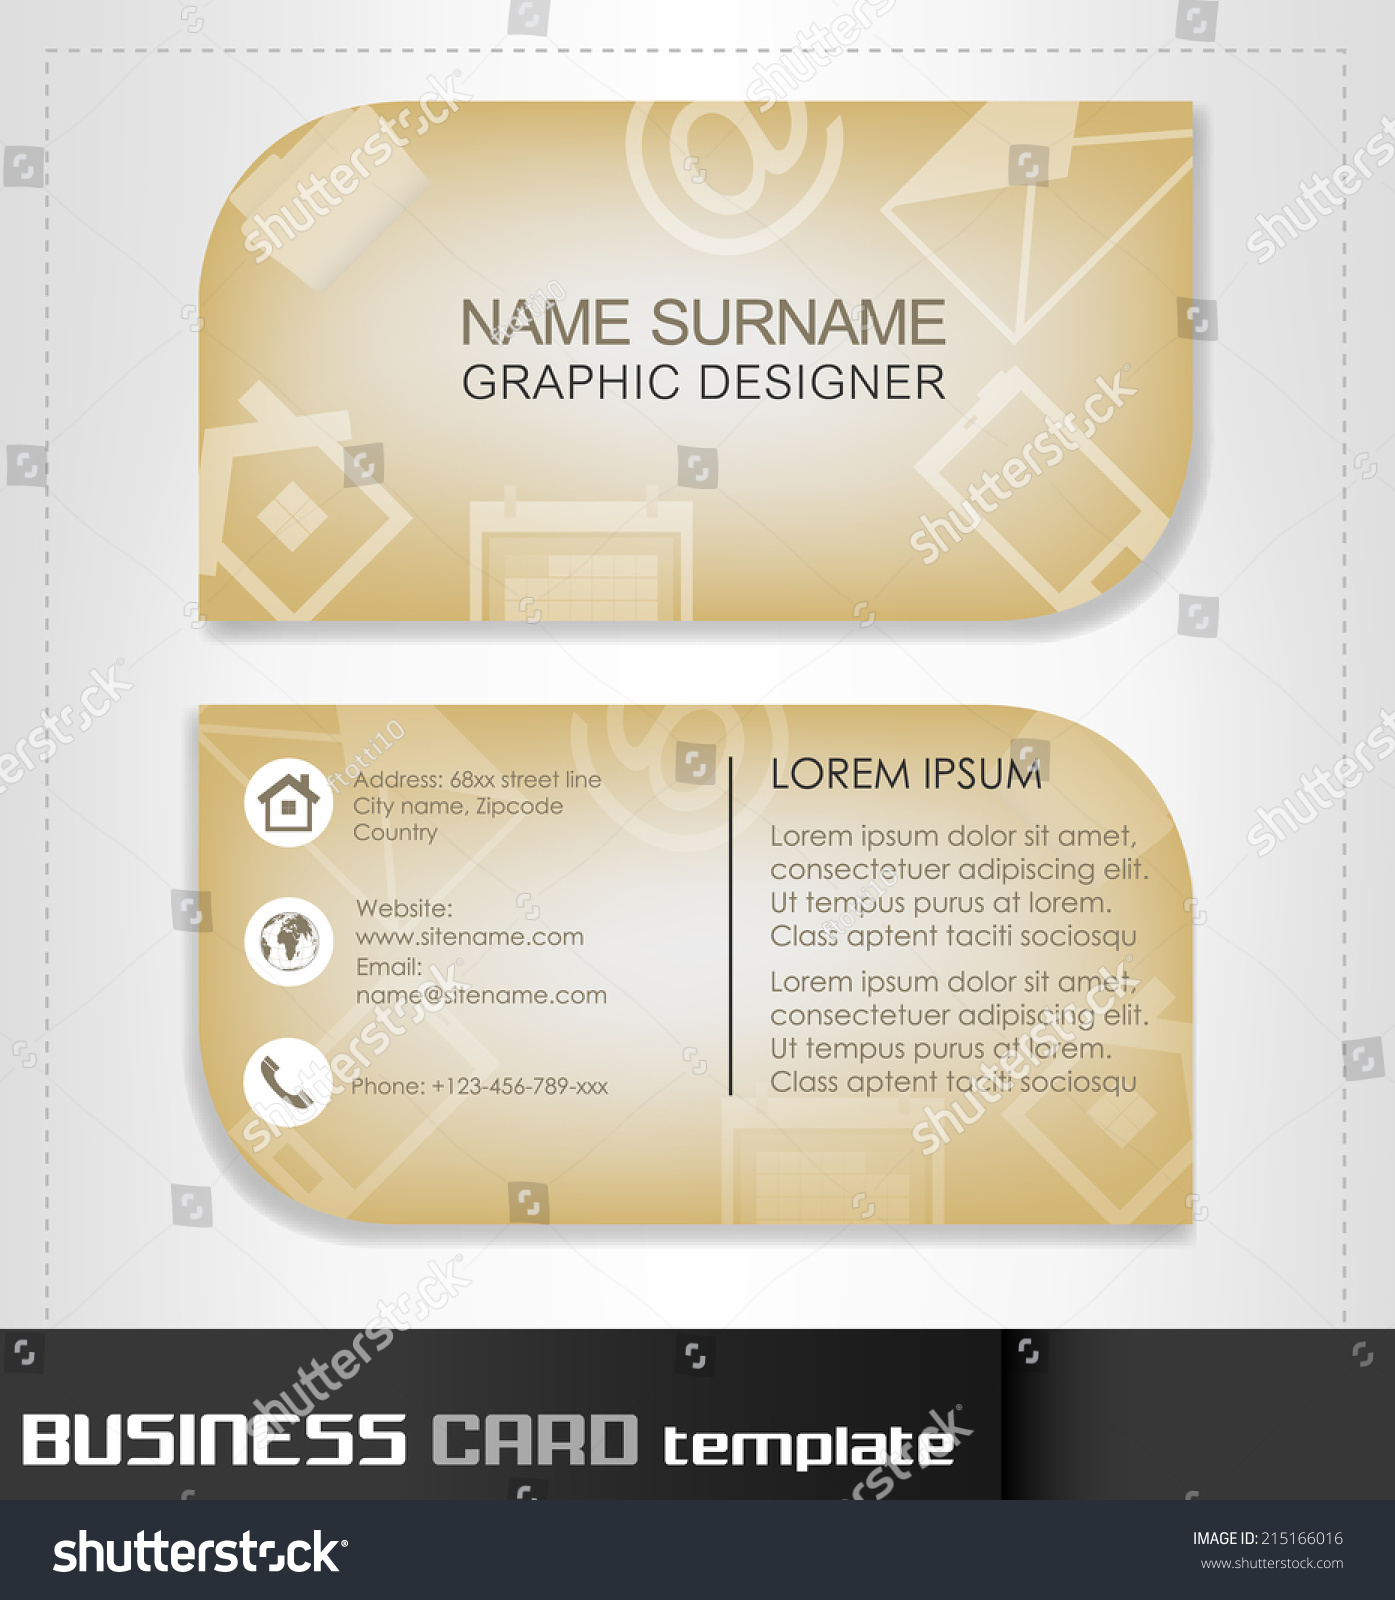 business card template visiting cardvector illustration stock